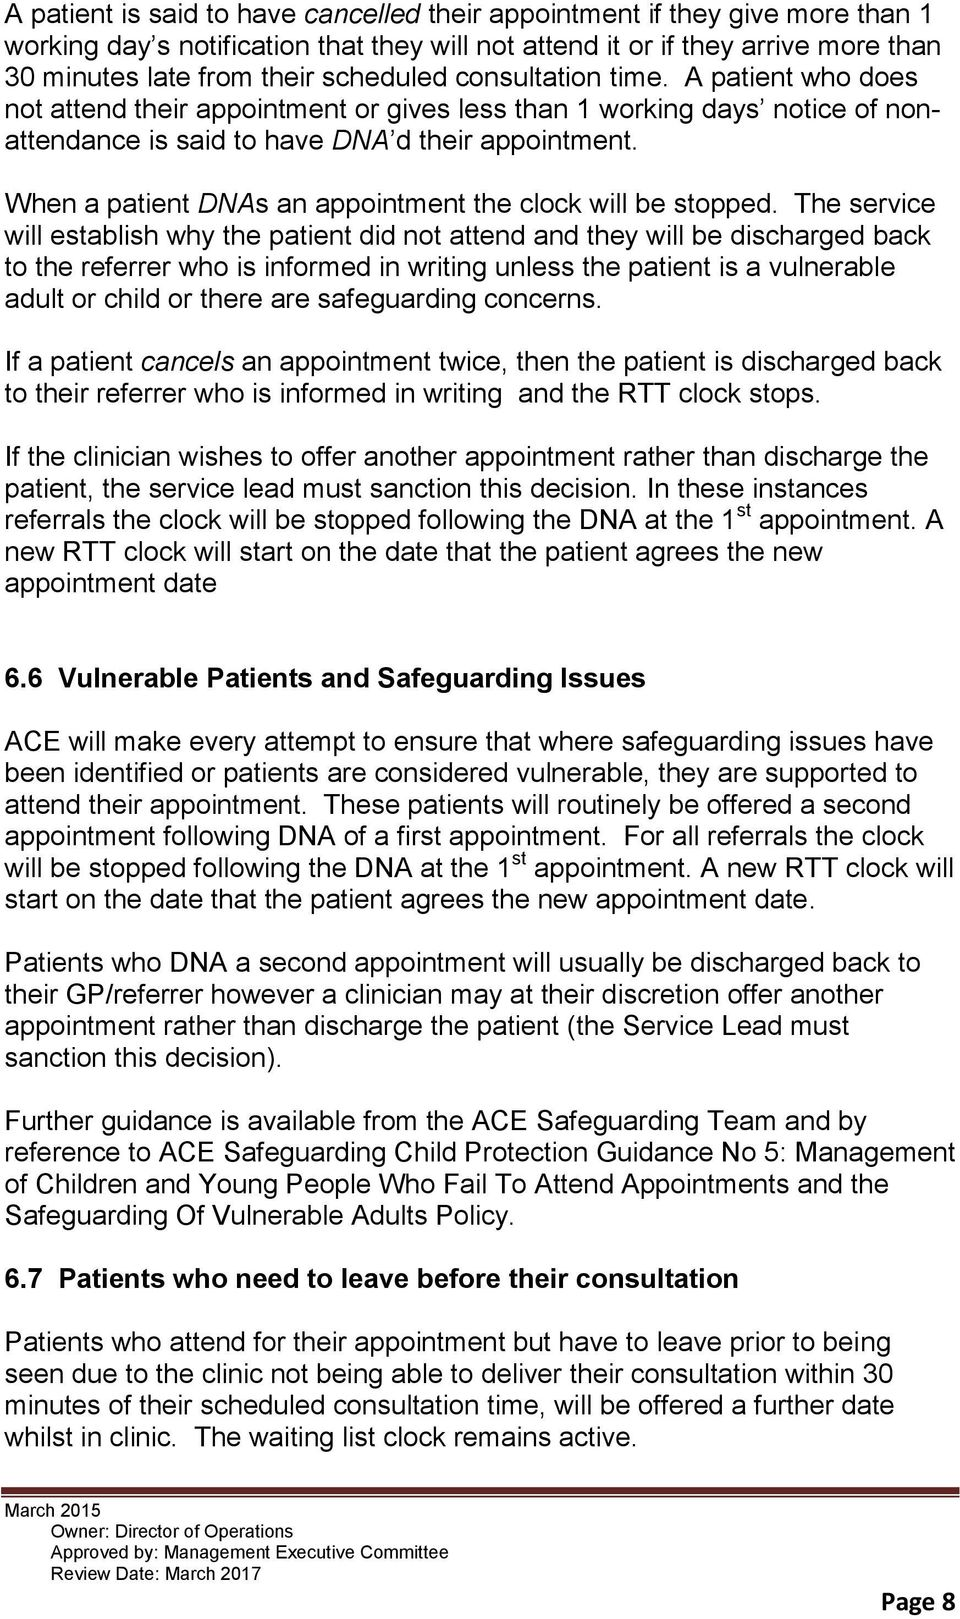 When a patient DNAs an appointment the clock will be stopped.